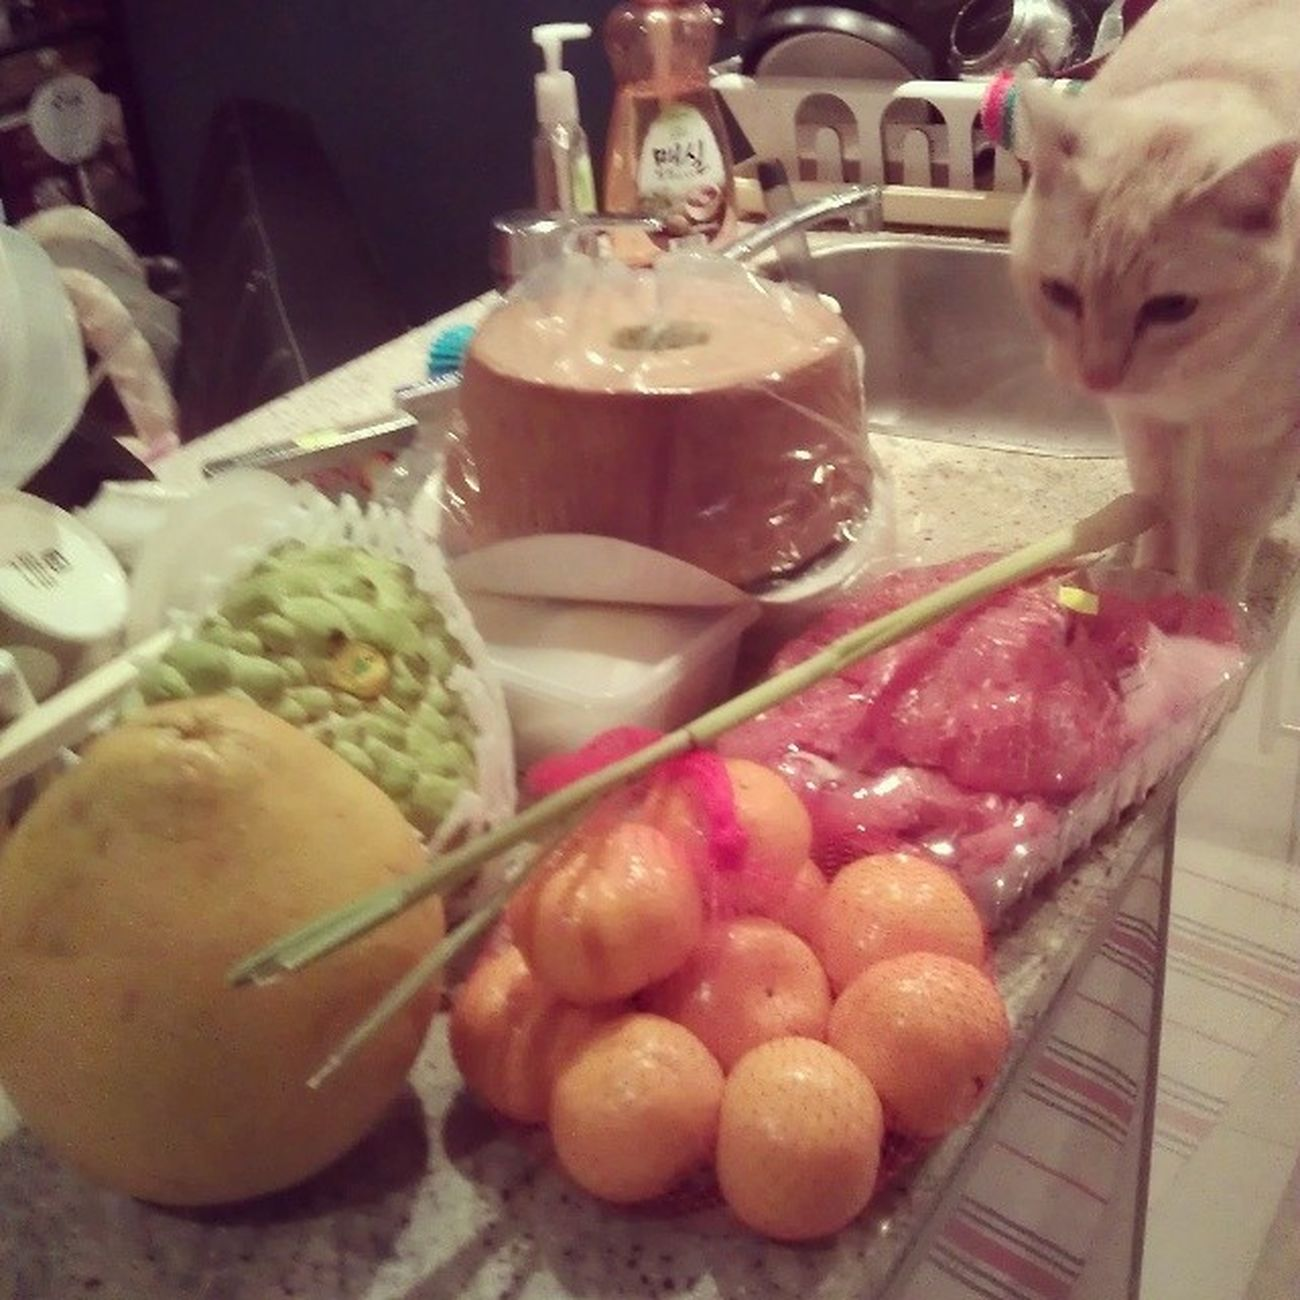 Creamio seemed all Excited at the Goodies we brought back from Cabramatta today